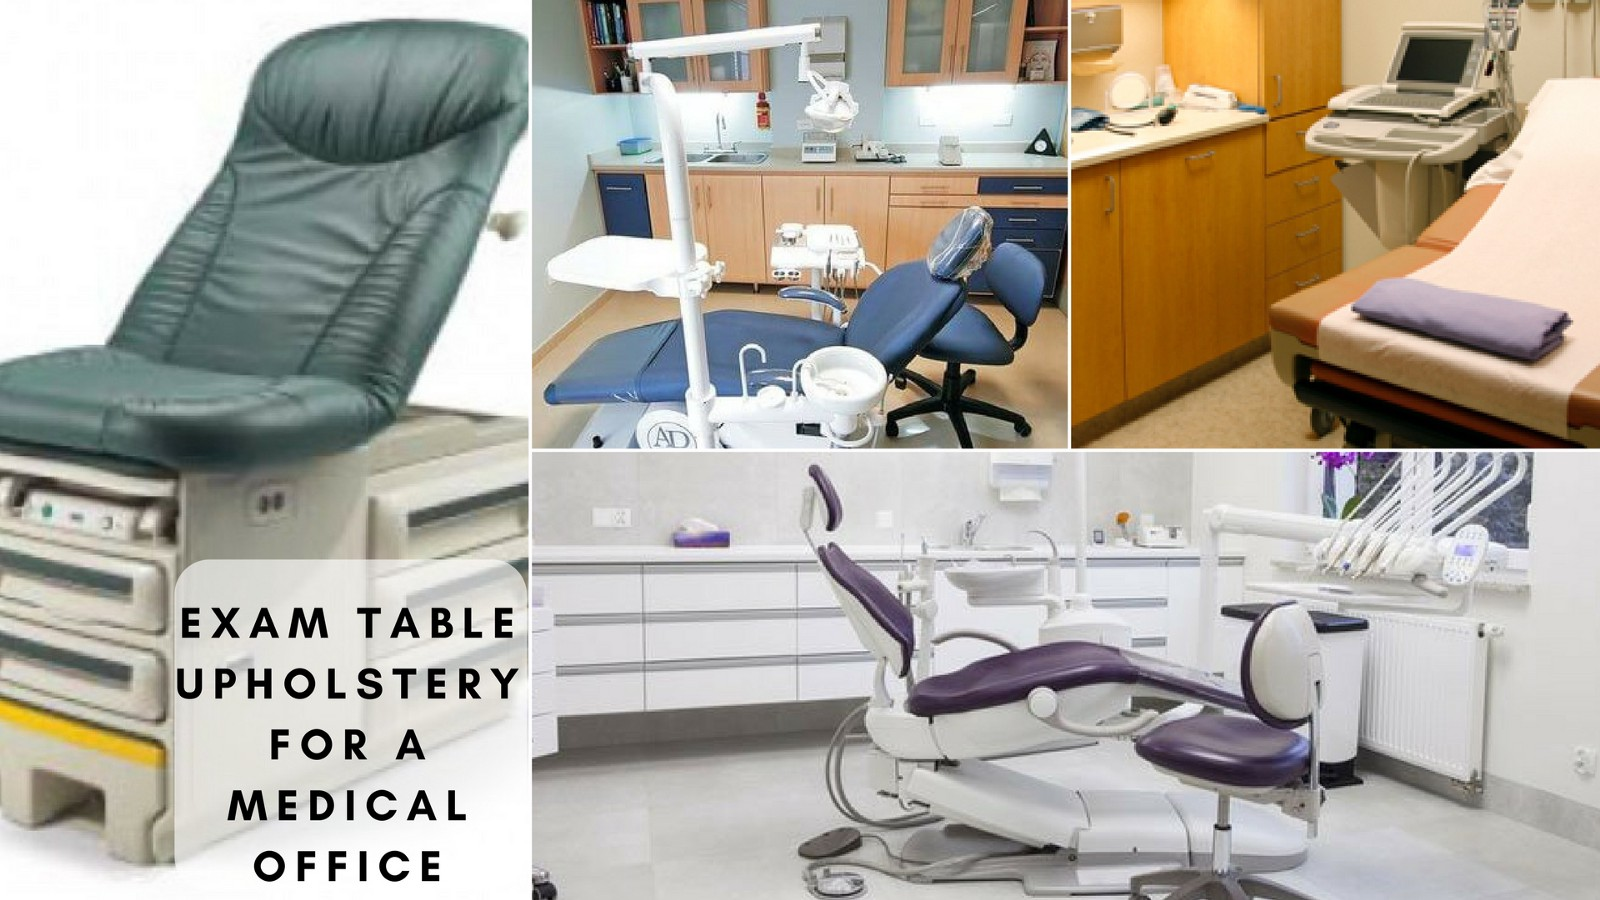 Reduce Costs With Exam Table Upholstery For A Medical Office